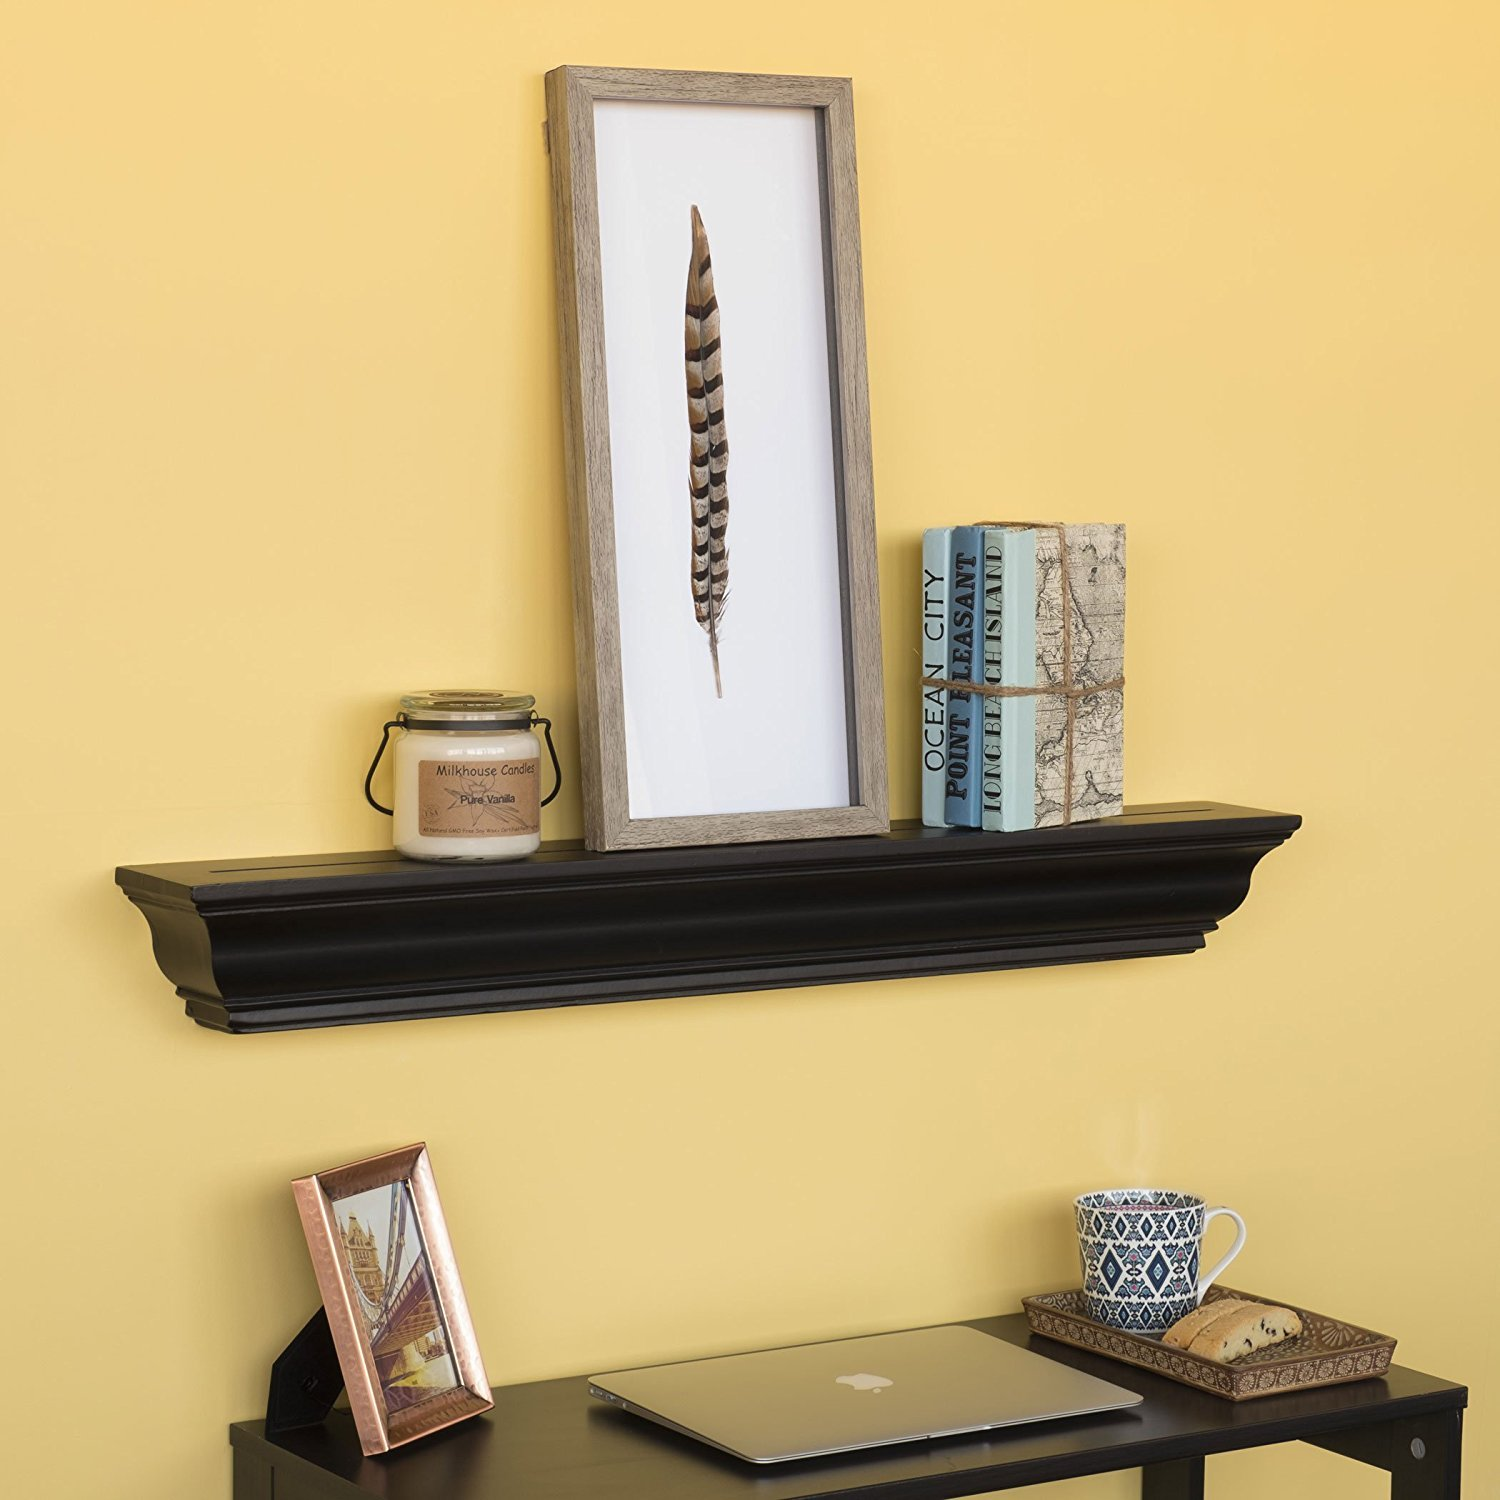 Amazon.com: Crown Molding Floating Wall Shelf Decorative Picture Art ...